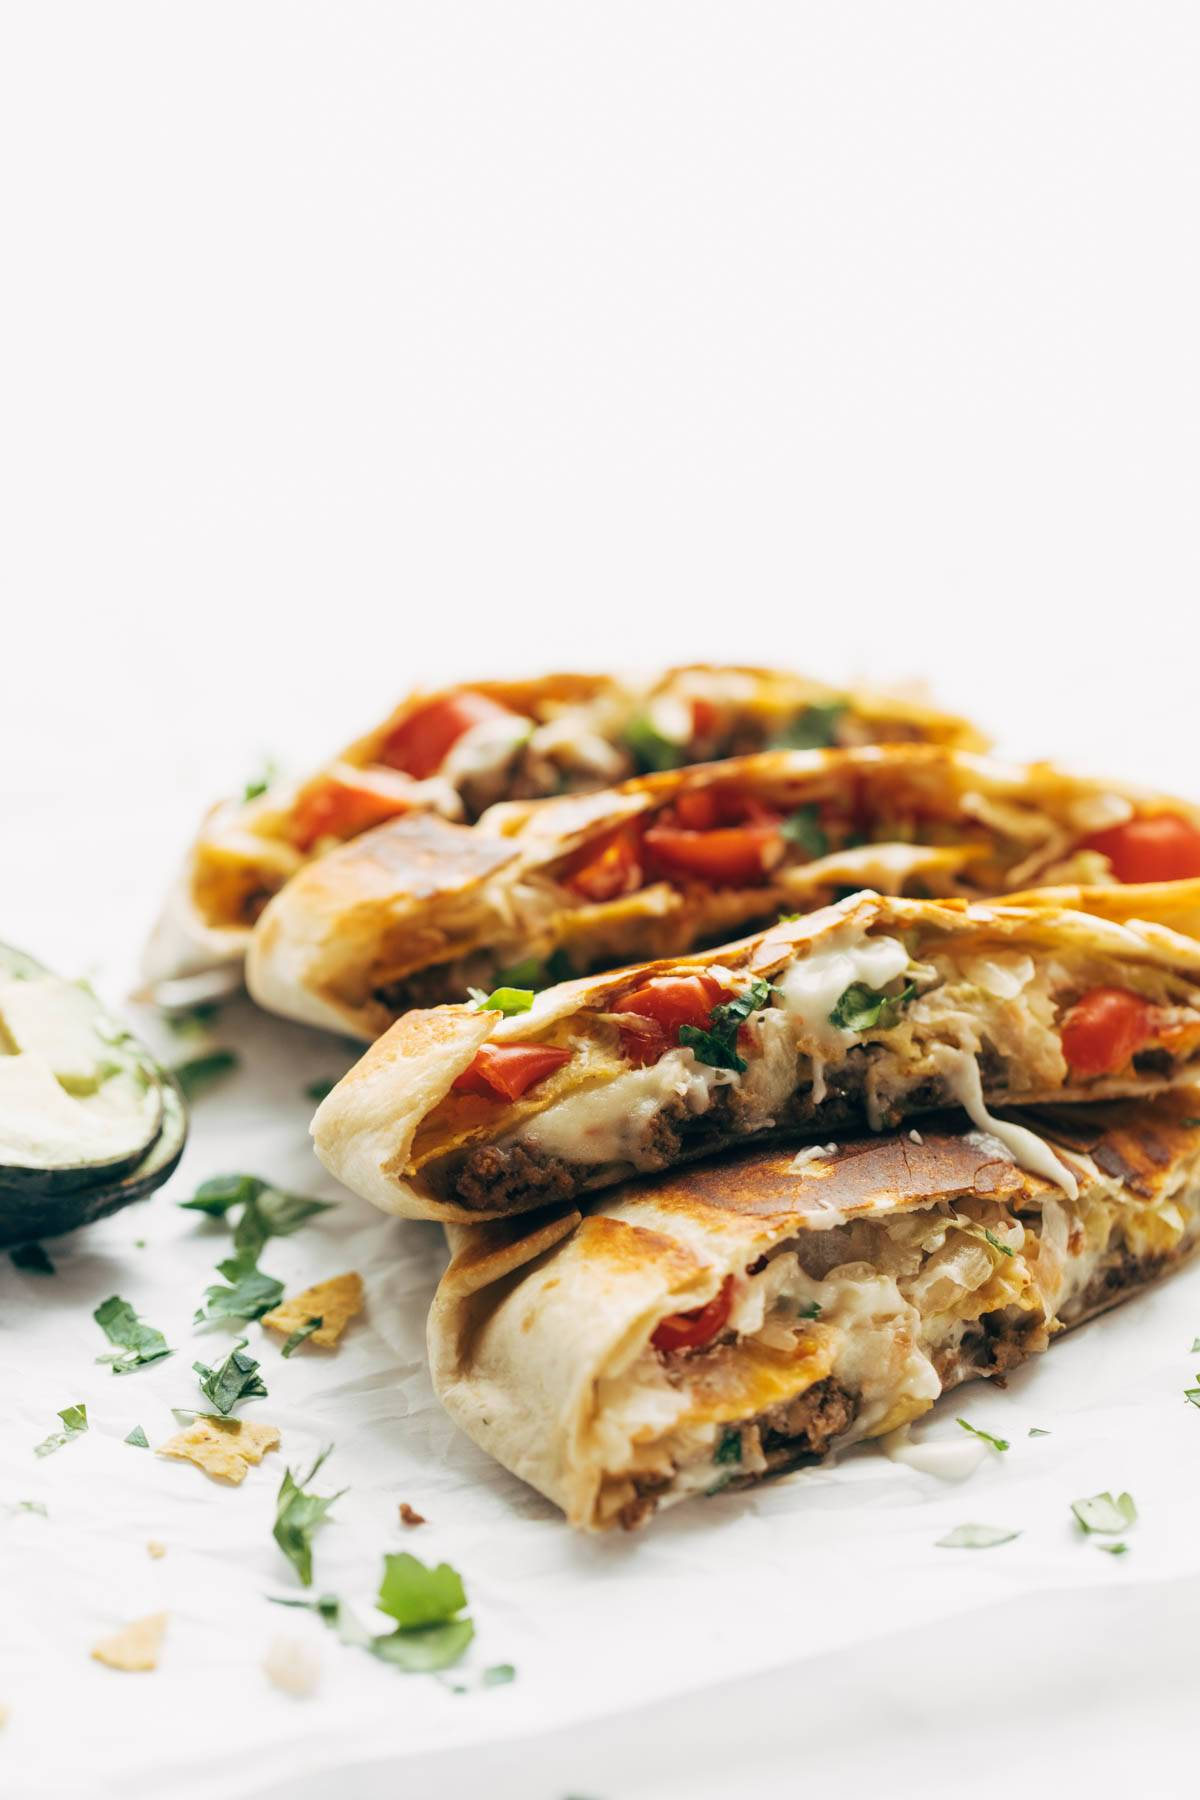 Crunchwrap Supremes stacked together.